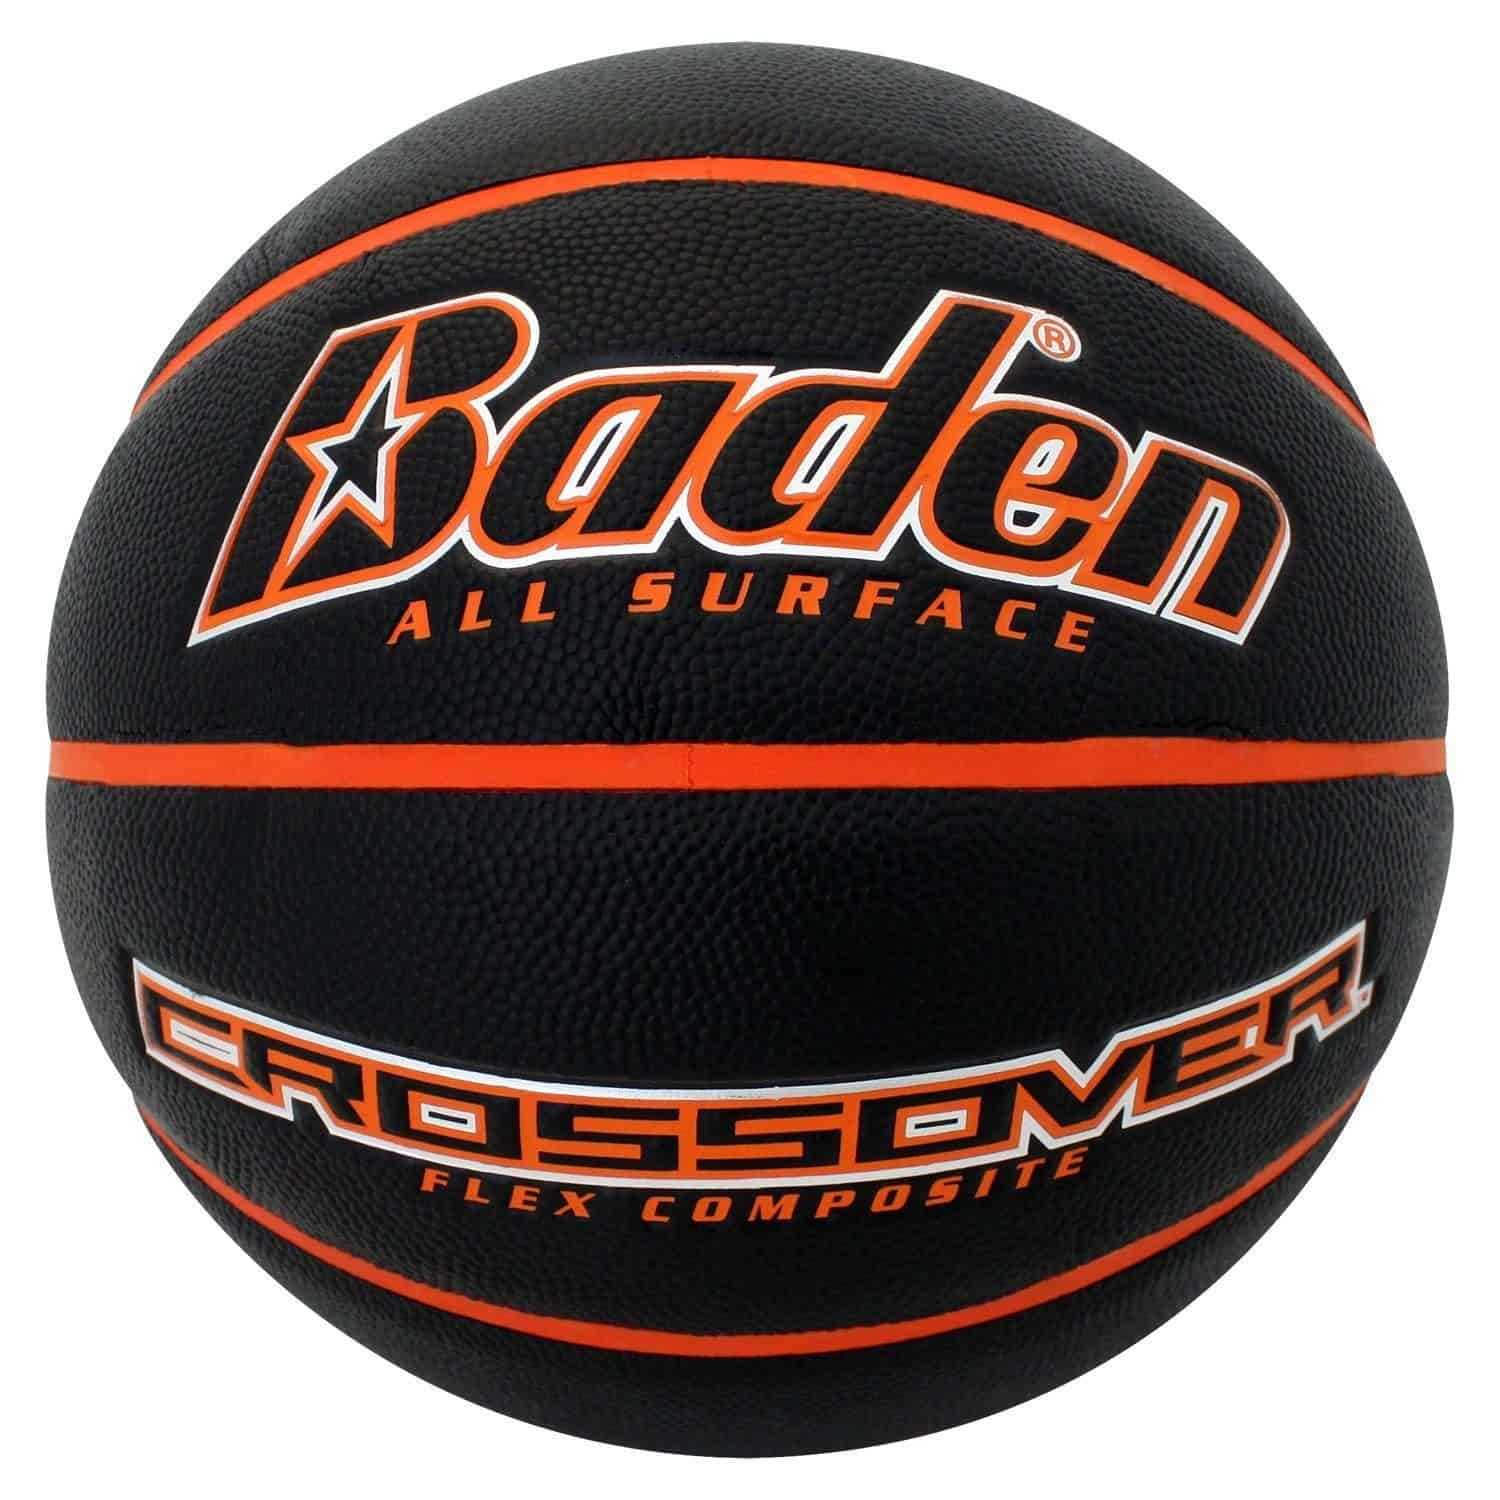 Review: Baden Crossover Flex Composite Basketball